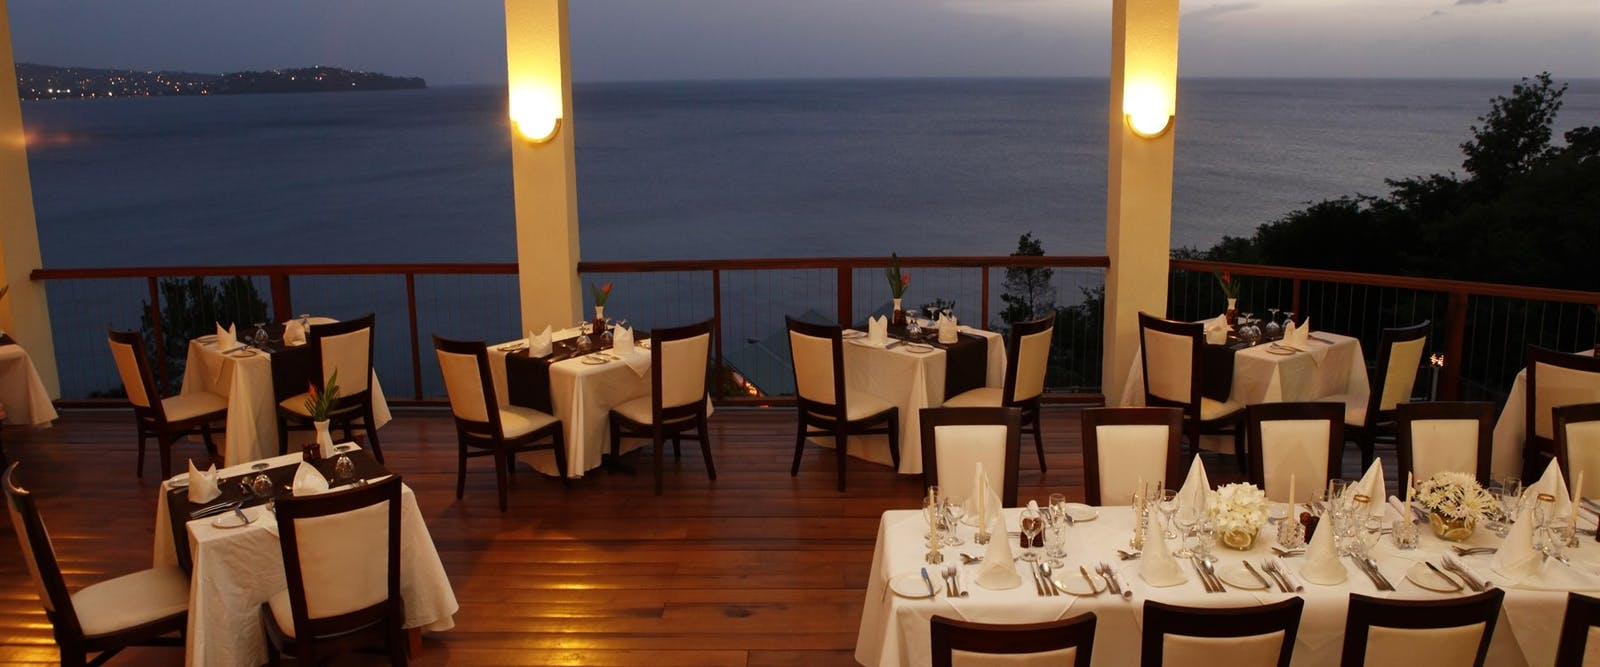 Windsong Restaurant, Calabash Cove, St Lucia